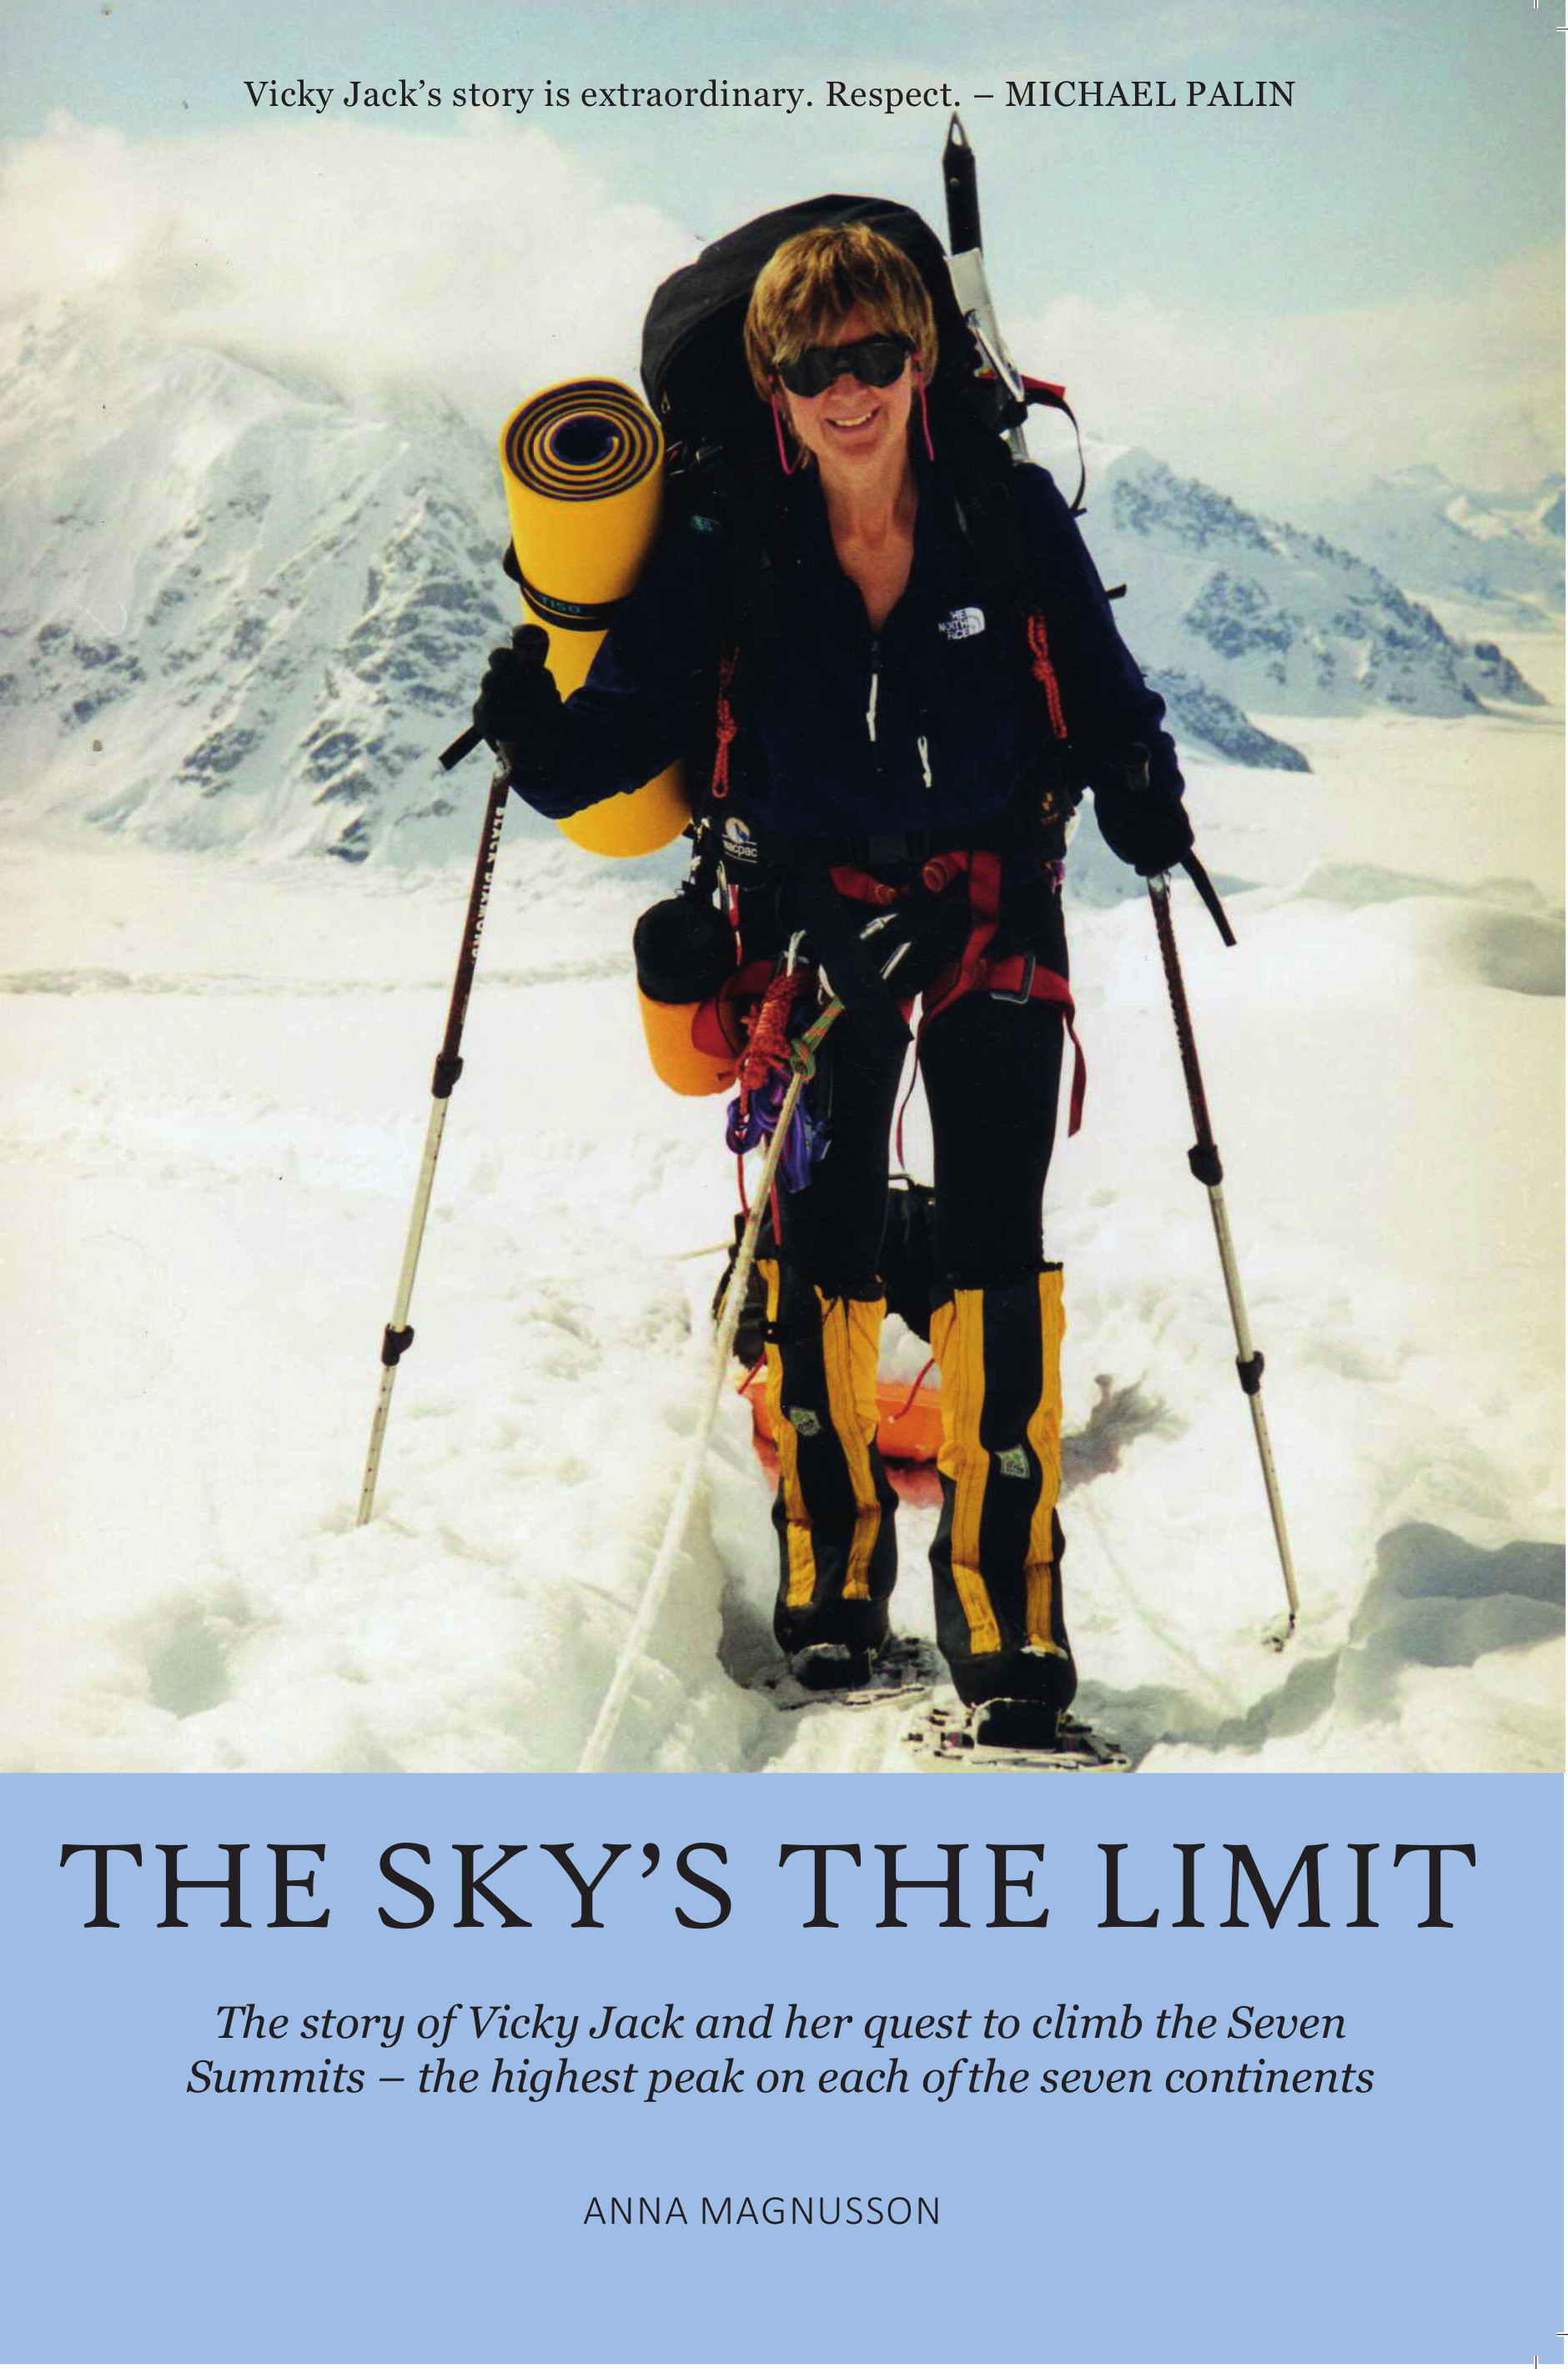 The Sky's the limit book cover